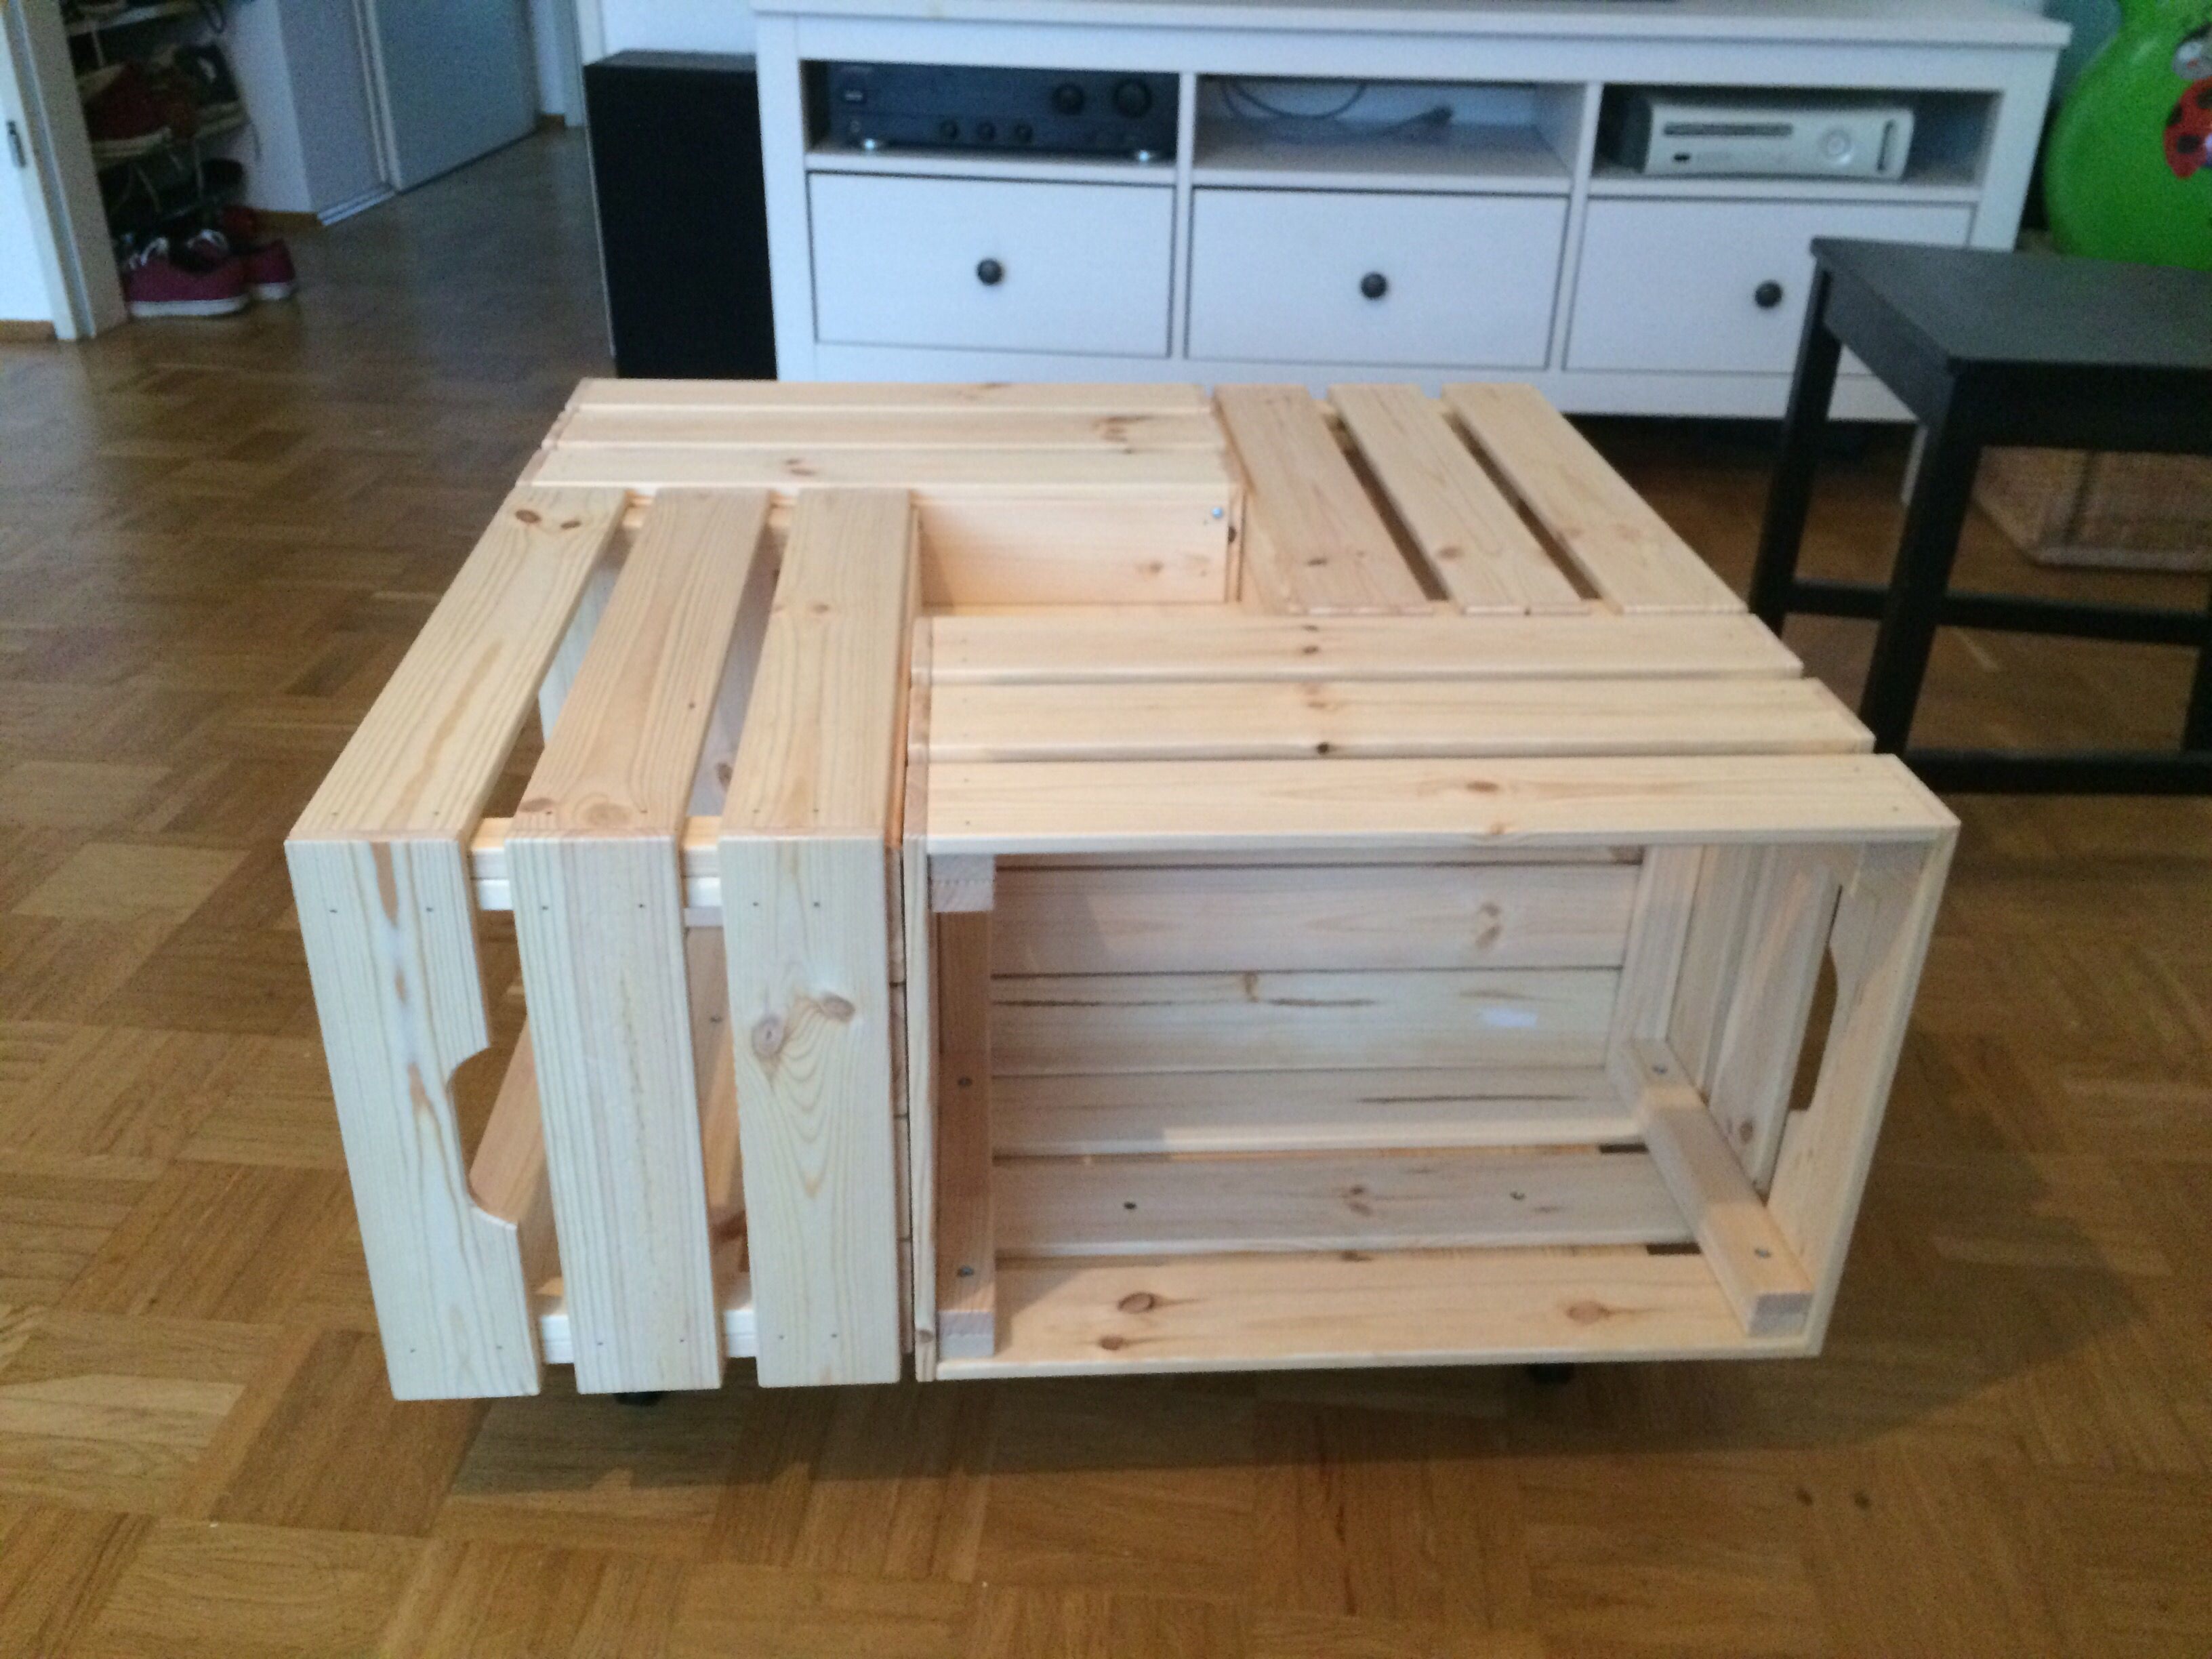 Image Result For Ikea Knagglig Ikea Diy Ikea Crates Wooden Crate Coffee Table [ 2448 x 3264 Pixel ]